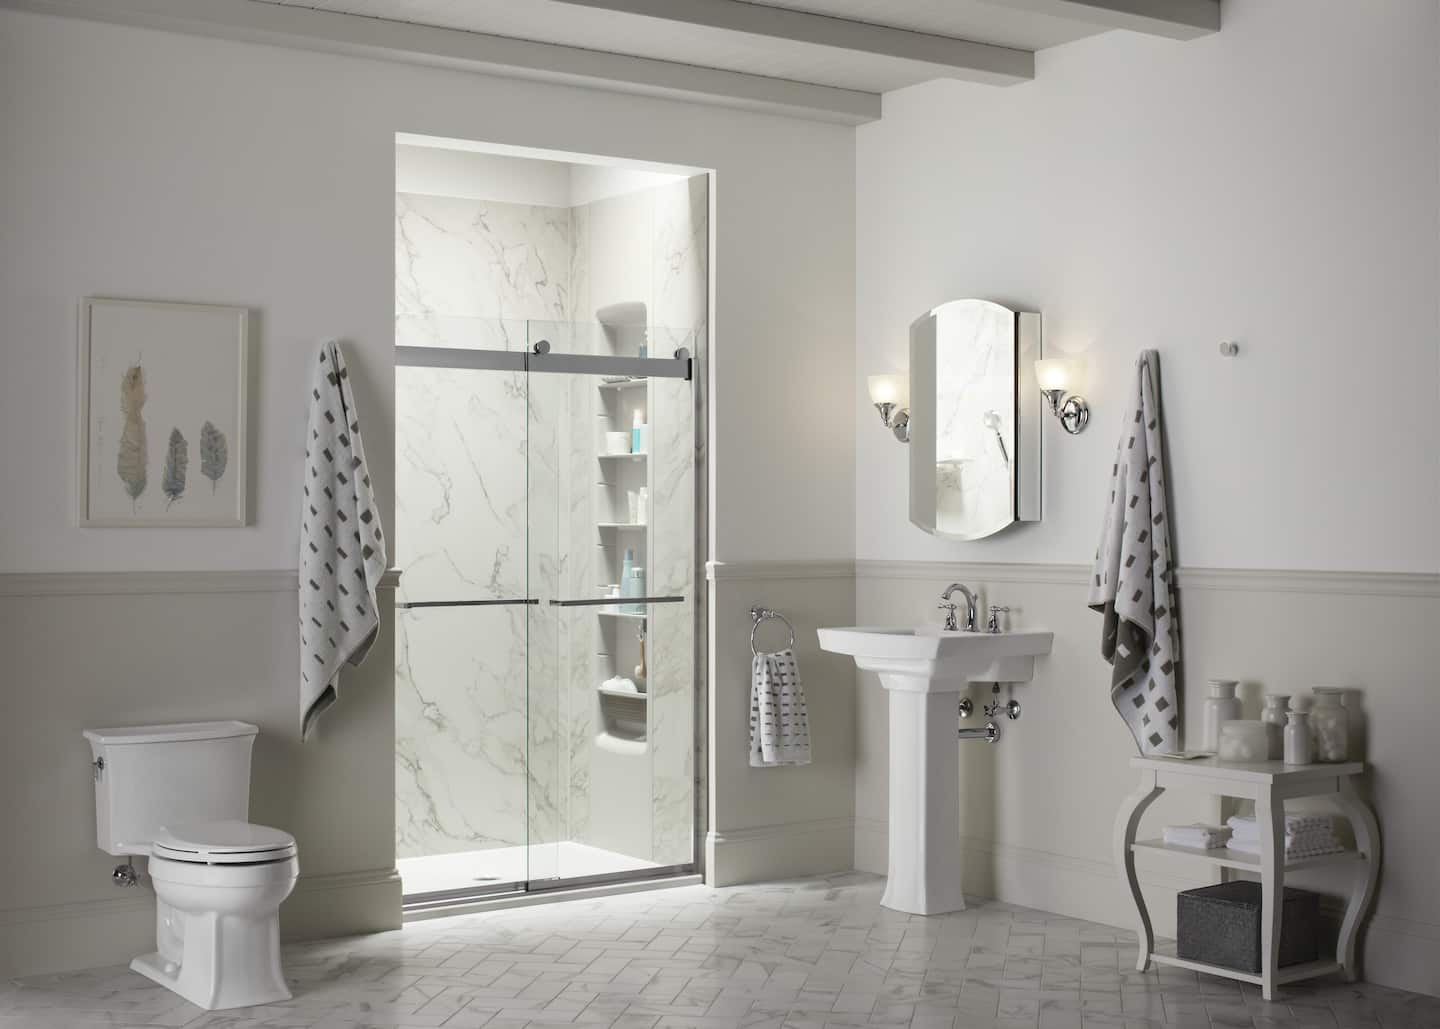 inspirational bathroom shower designs angie s list instead of colorful shower tiles homeowners are reverting back to neutral tones photo courtesy of kohler